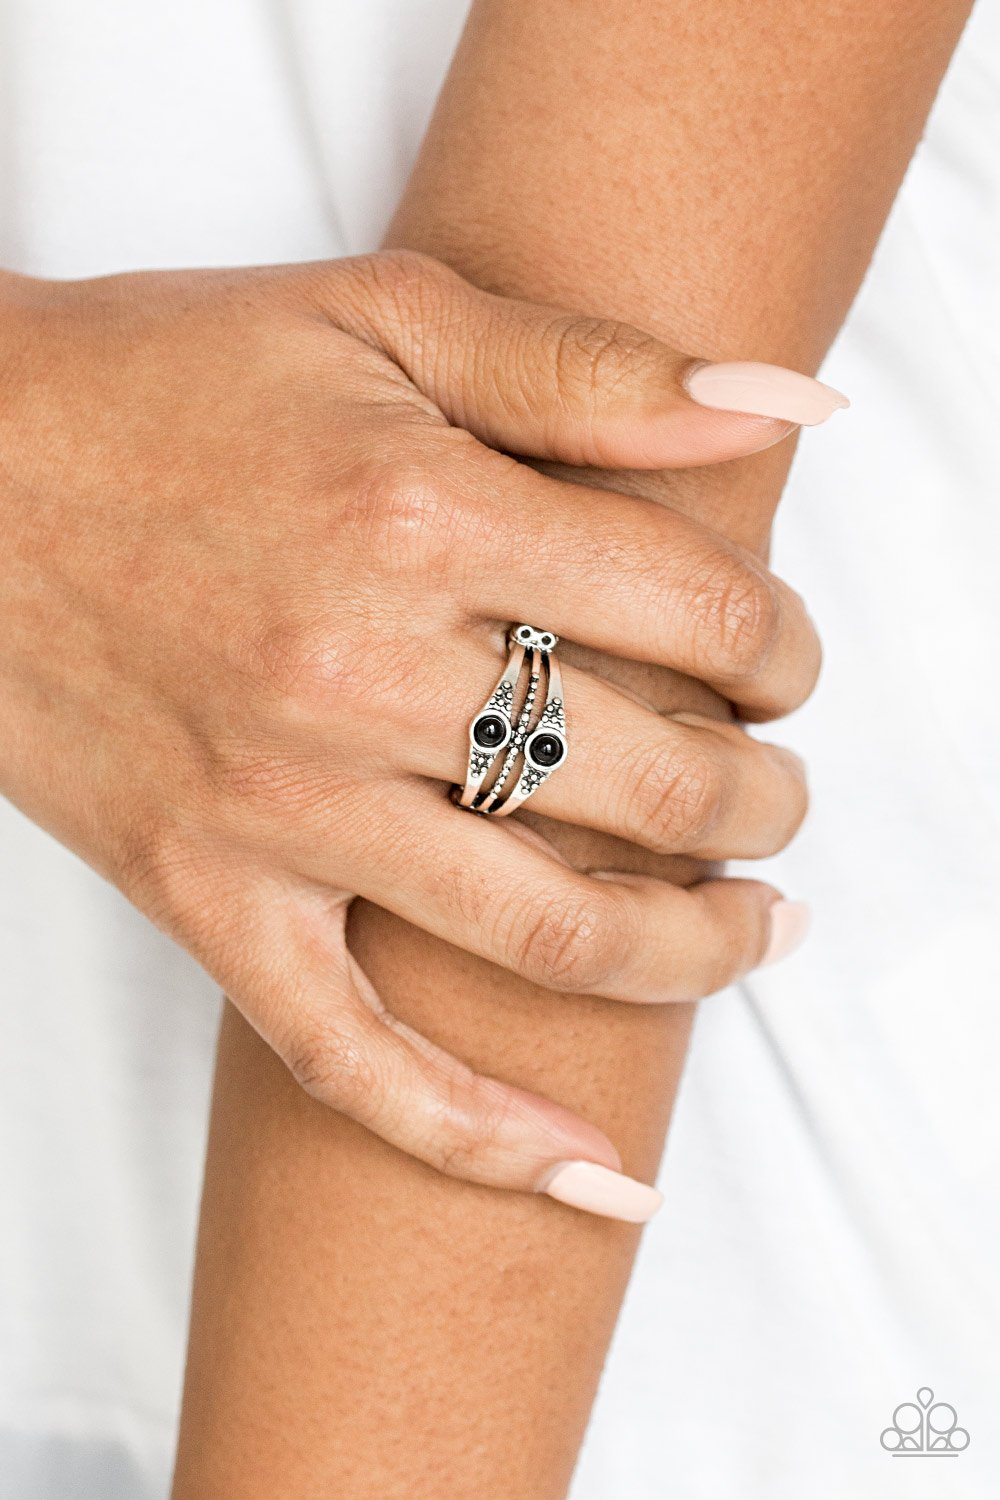 Give It Your Zest-black-Paparazzi ring